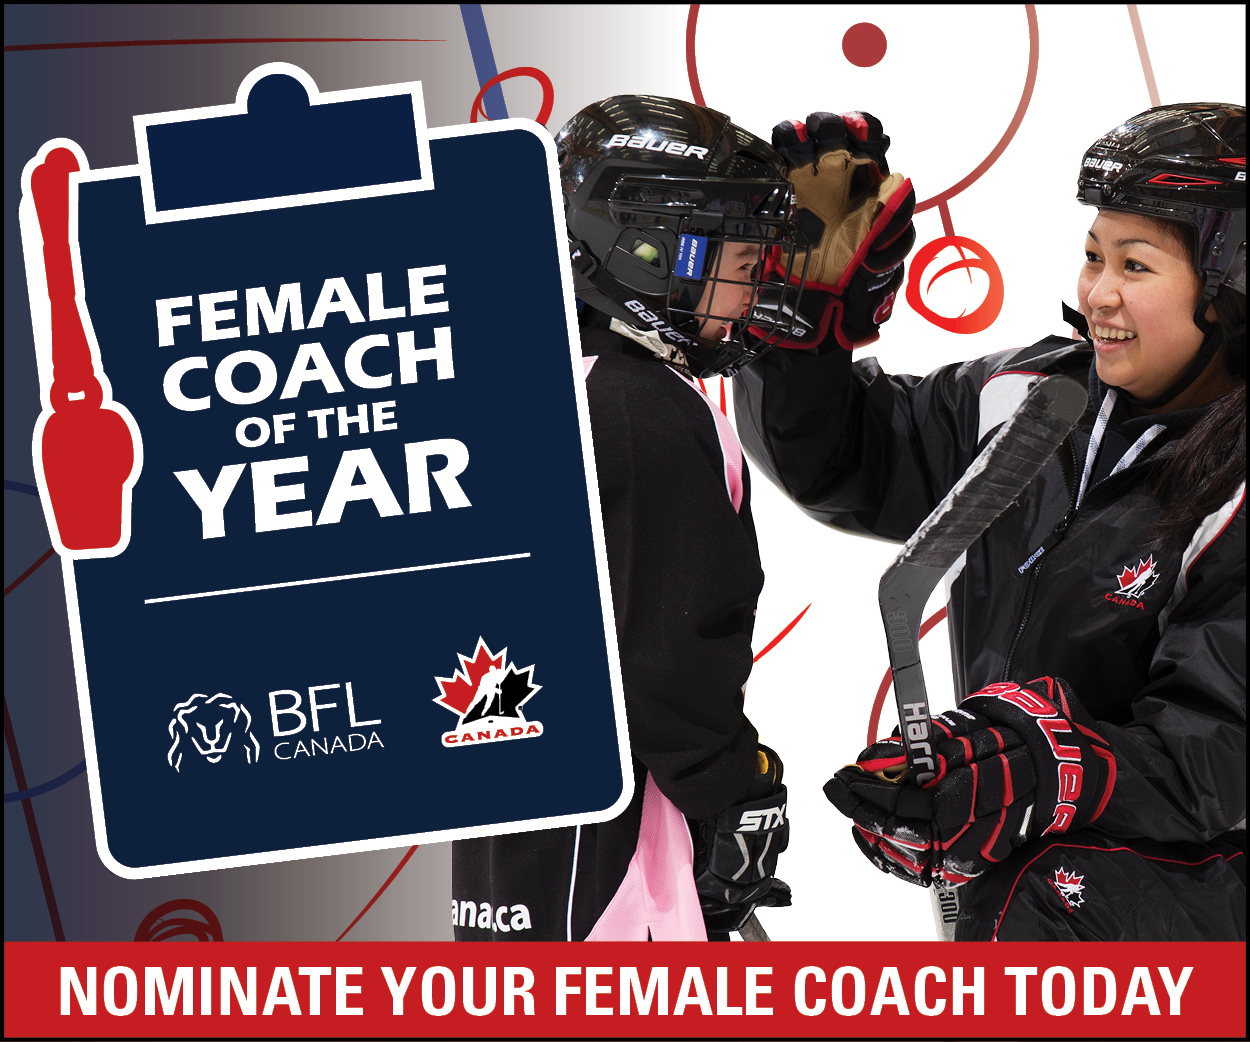 BFL Female Coach of the Year Awards